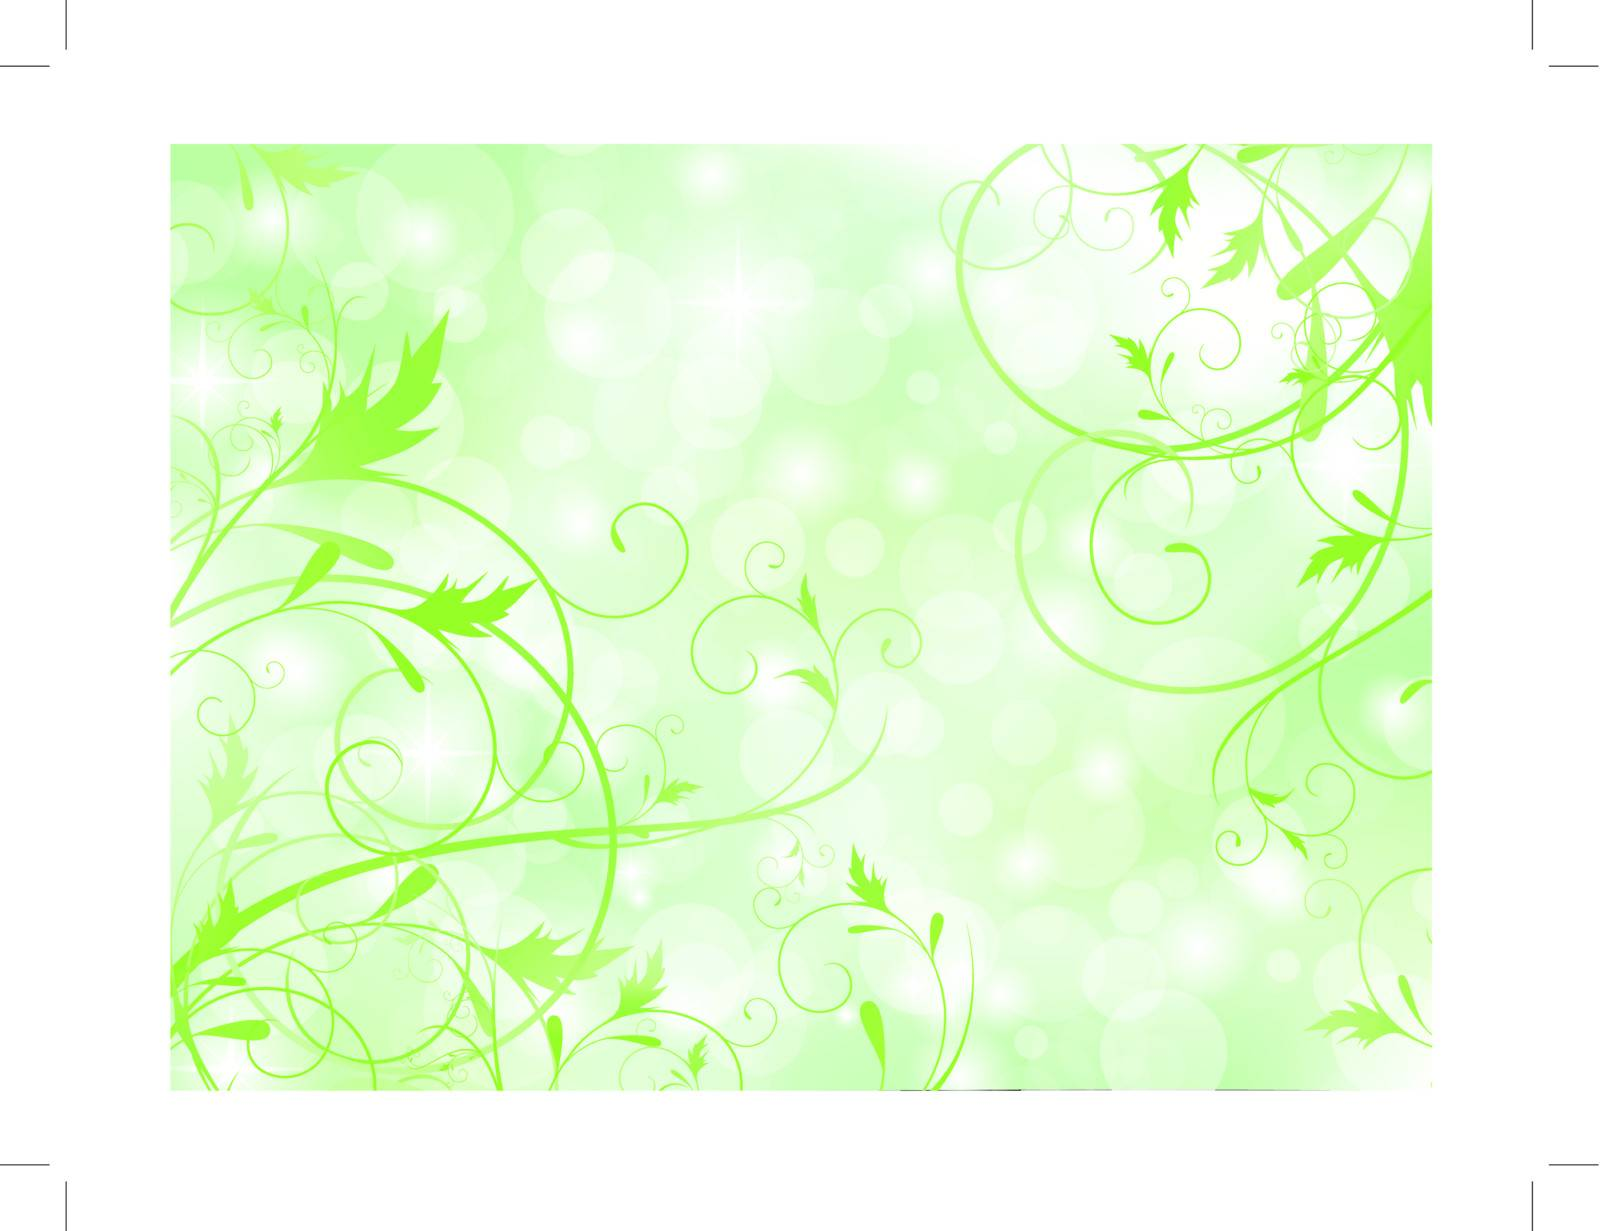 floral abstract background in green